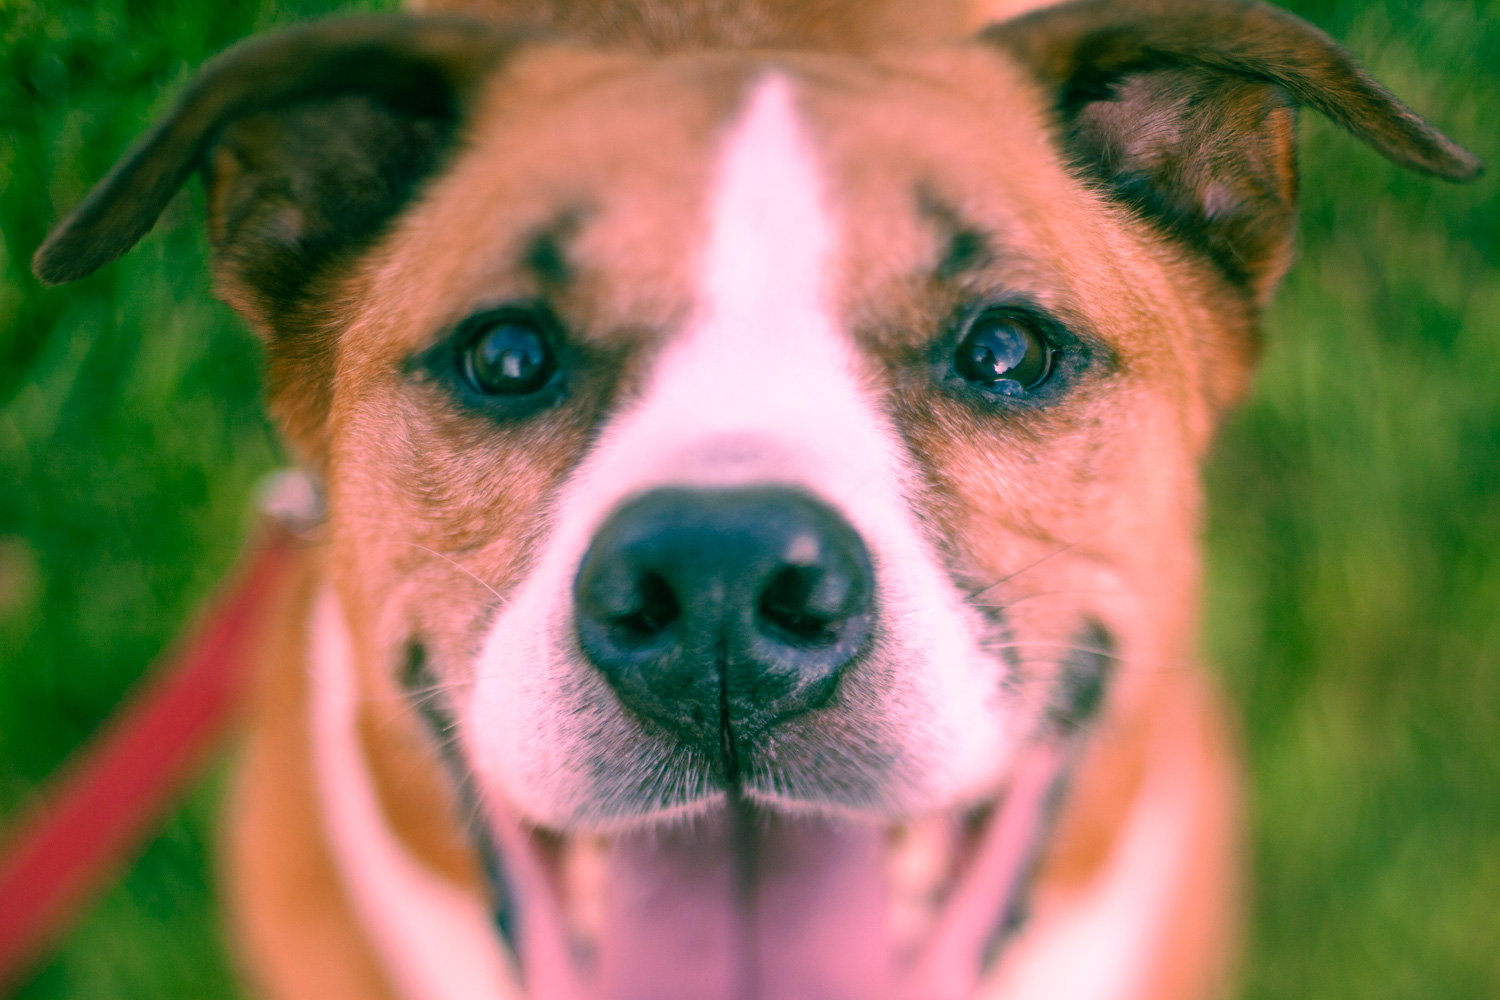 Portrait of a dog with a subtle split toning effect applied to the photo